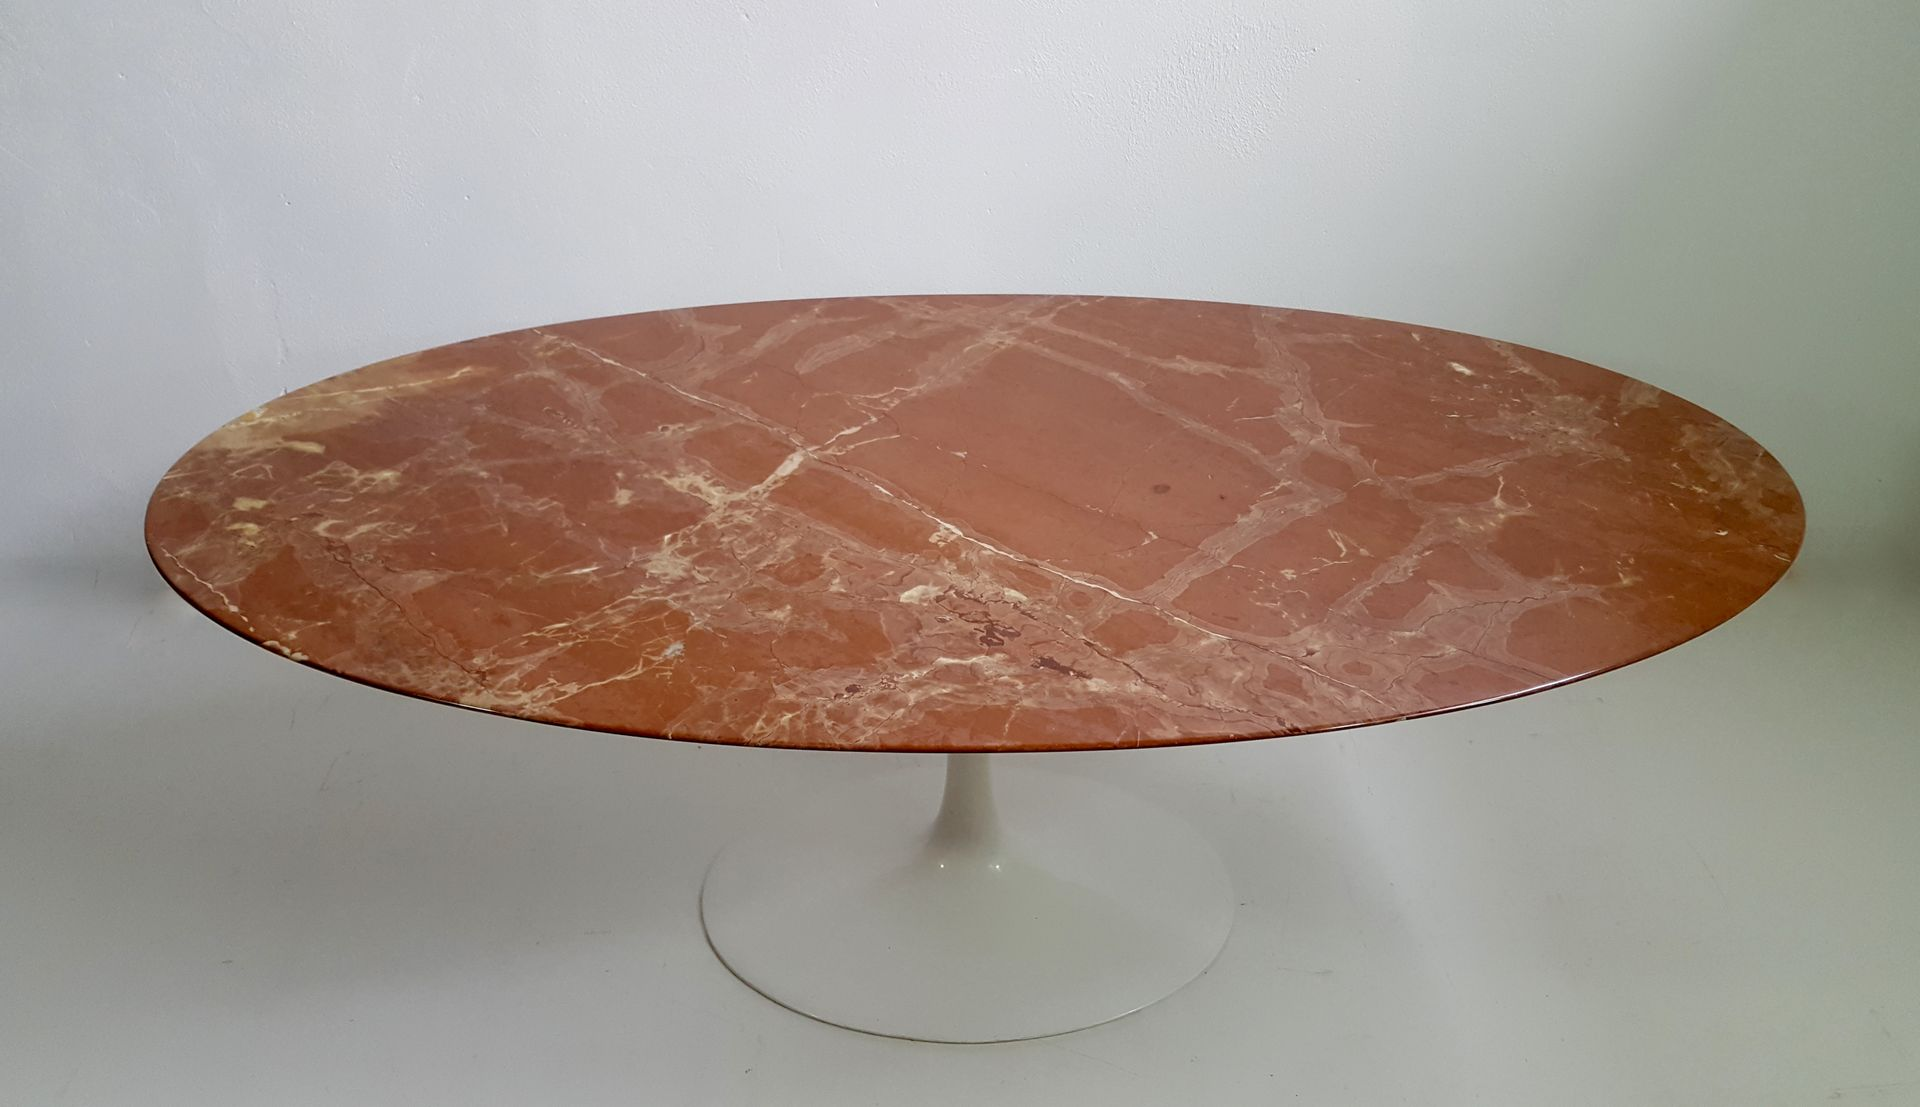 red marble oval dining table by eero saarinen for knoll. Black Bedroom Furniture Sets. Home Design Ideas